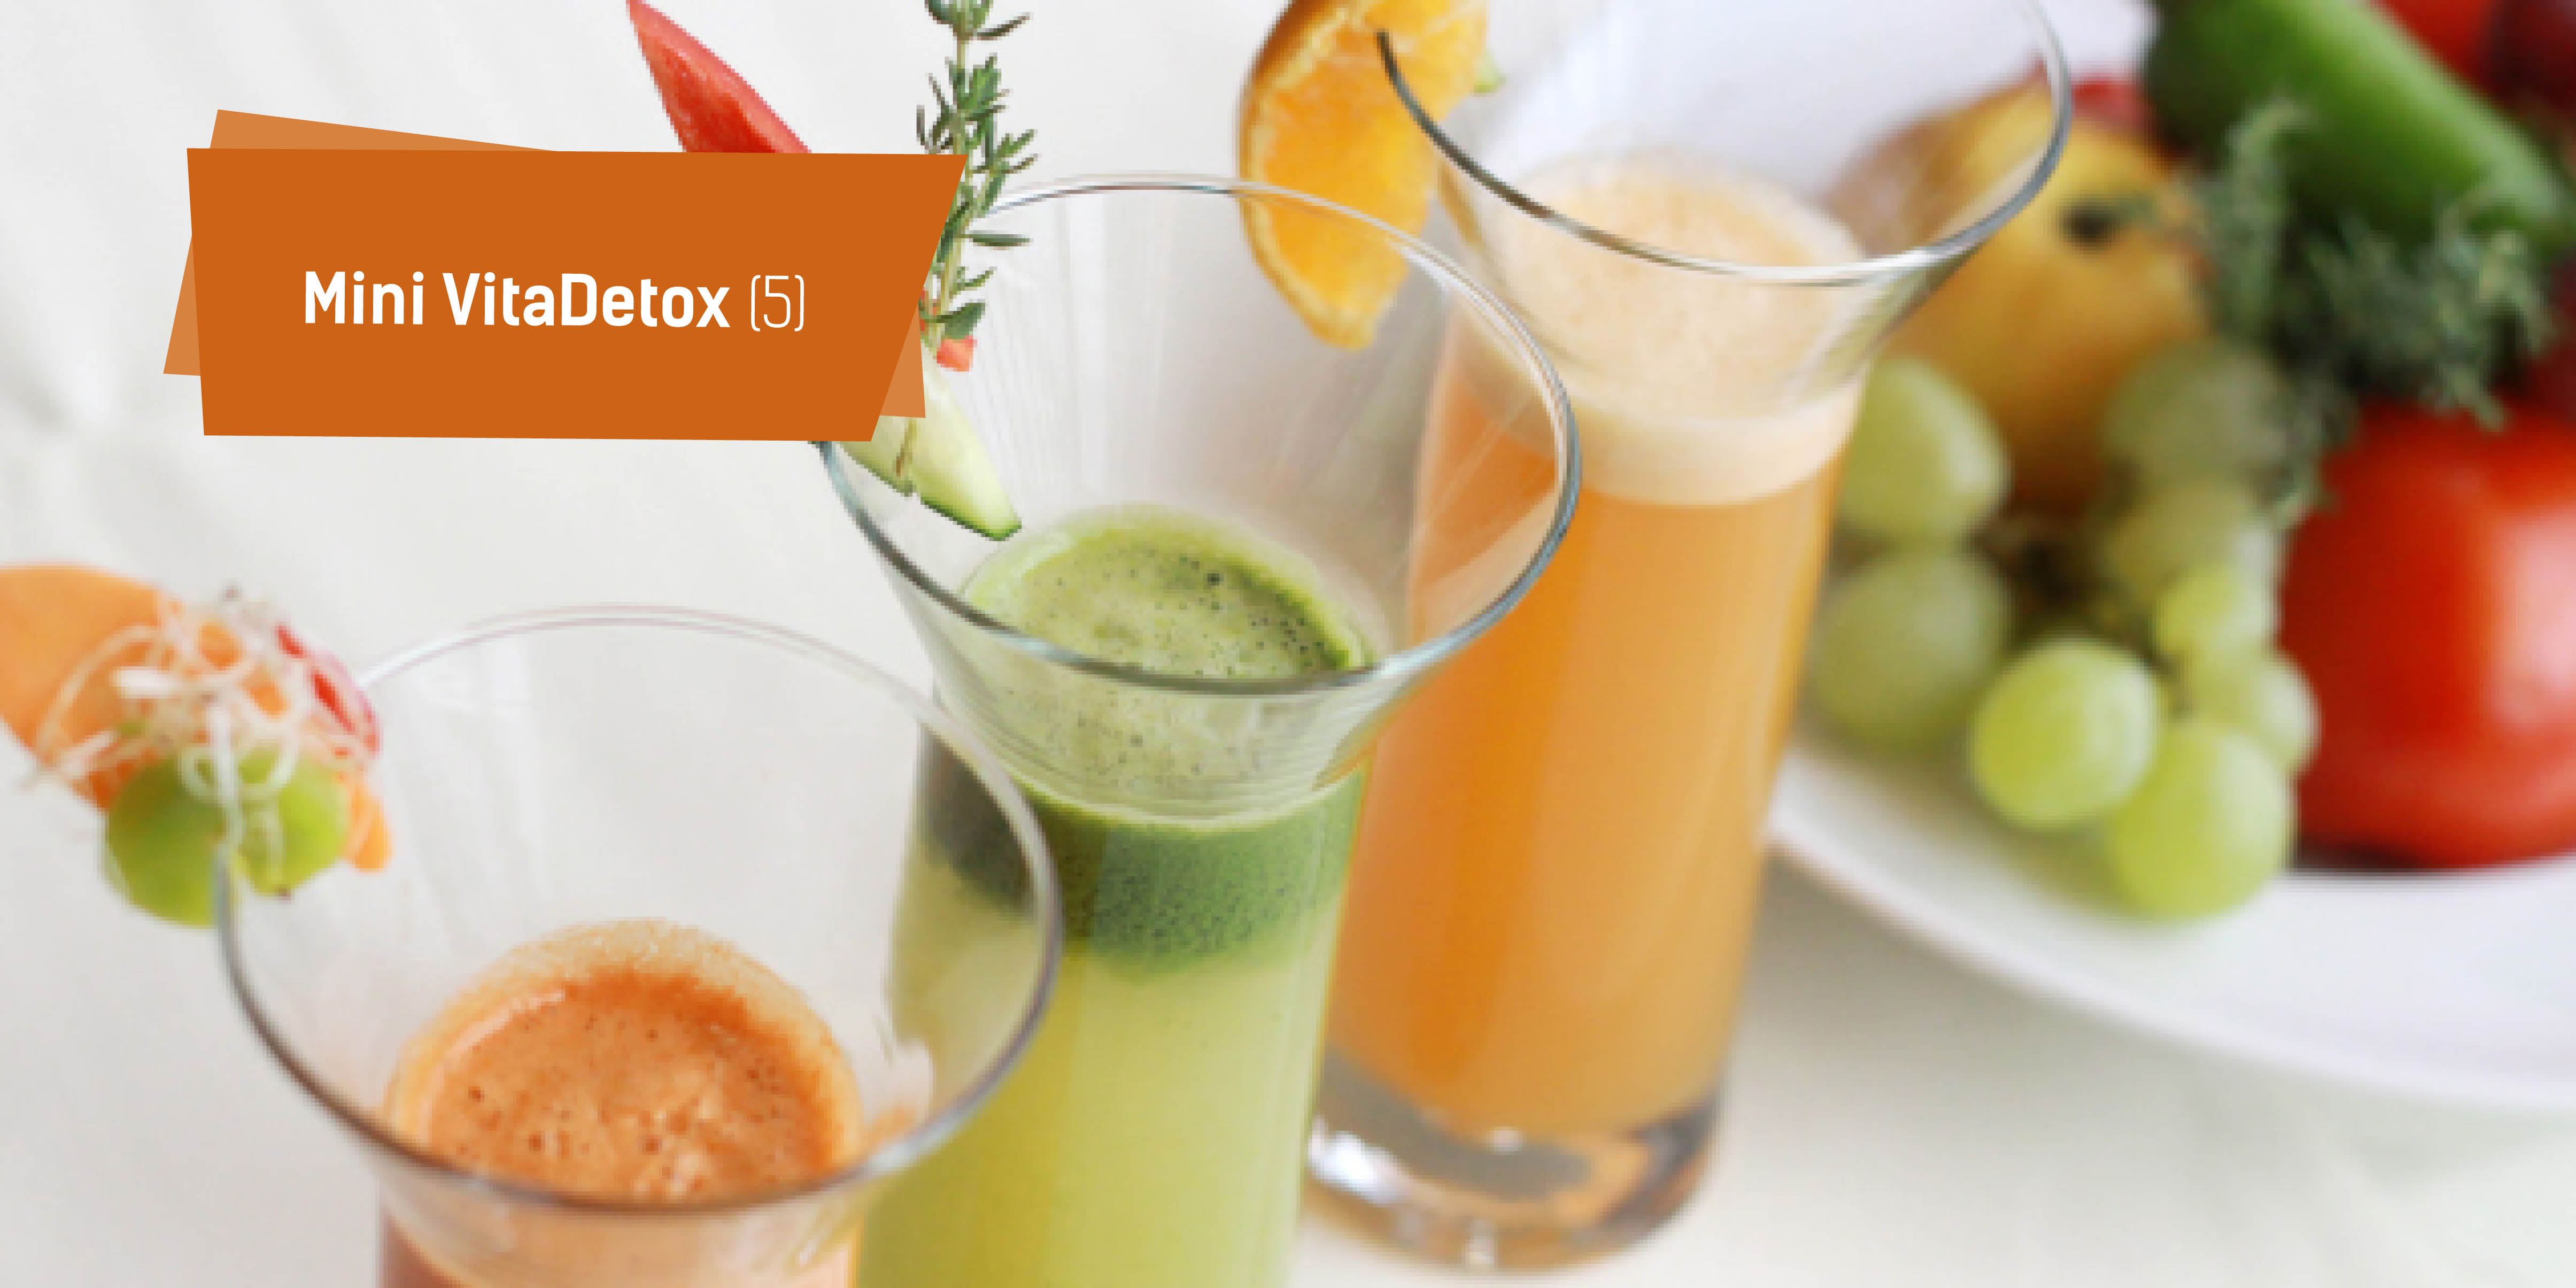 VitaDetox – detoxification programme with fasting